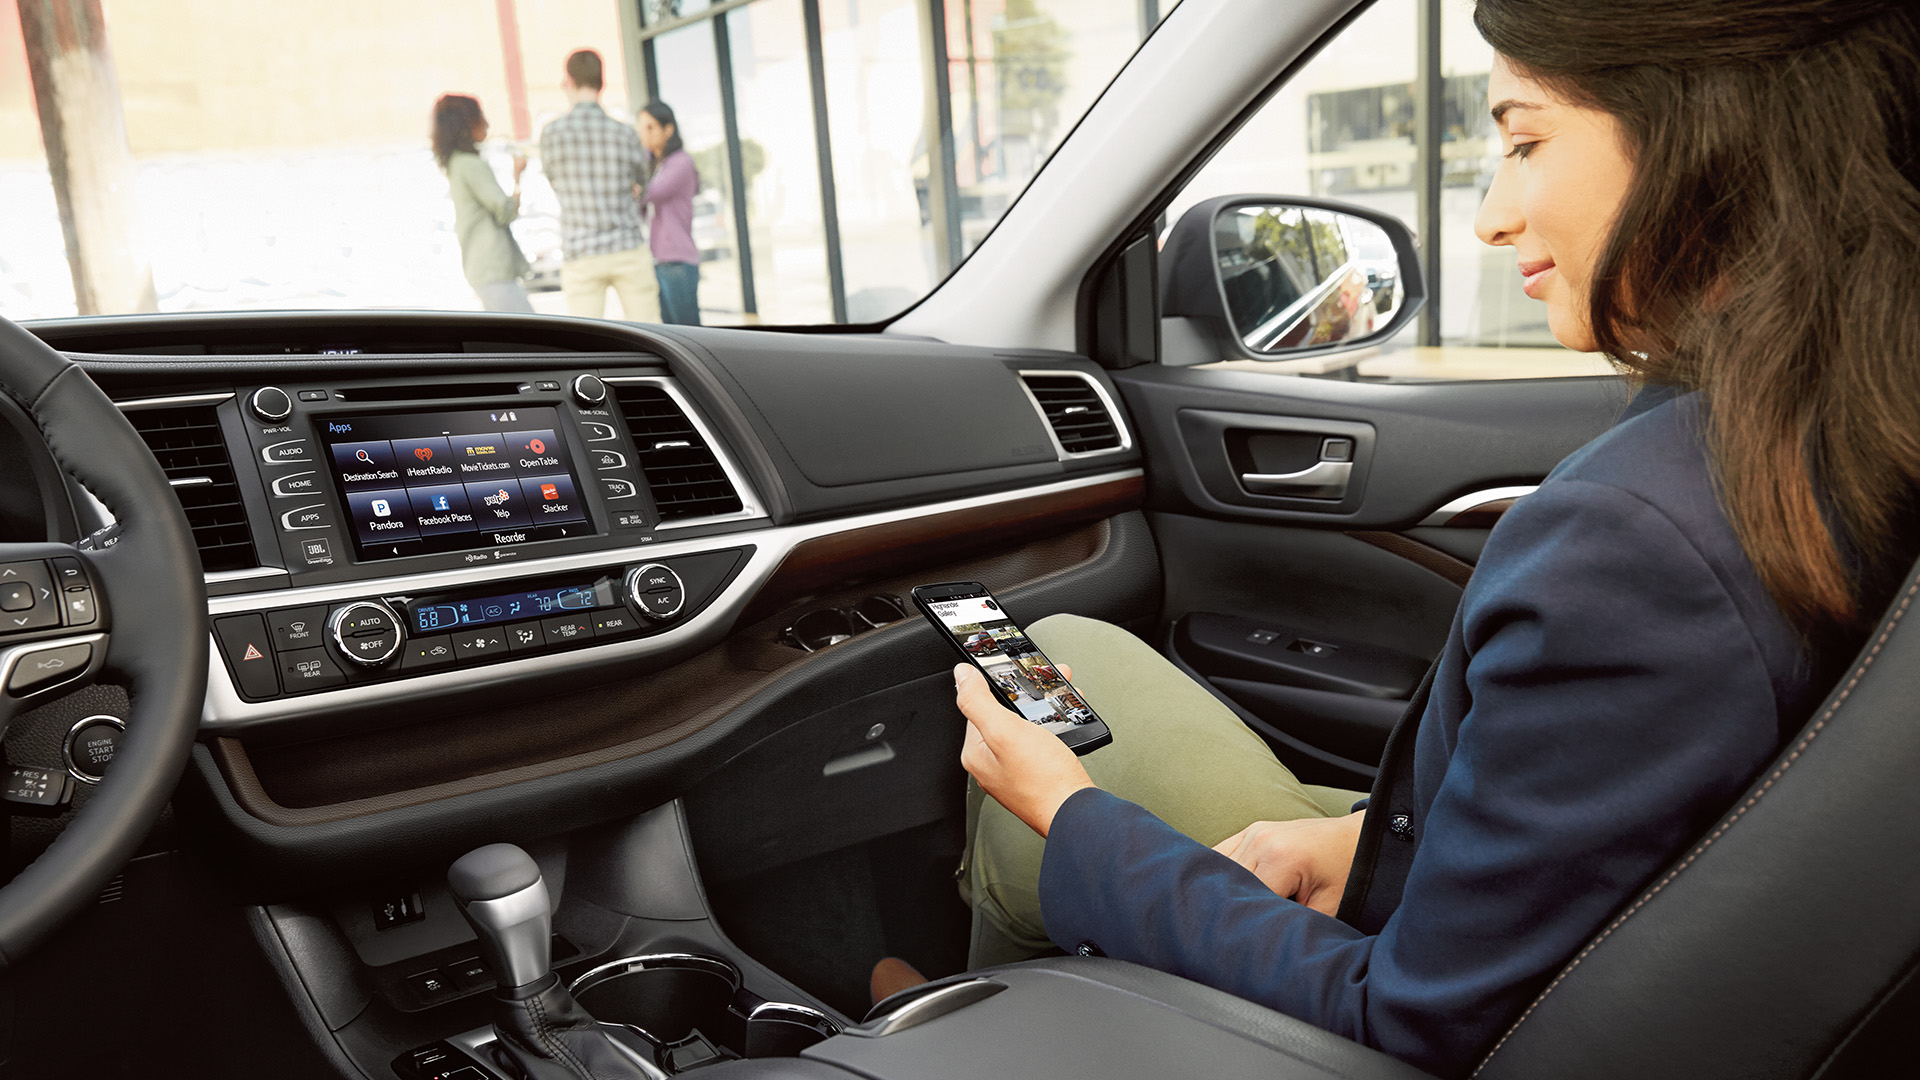 Touch interface of Toyota Highlander